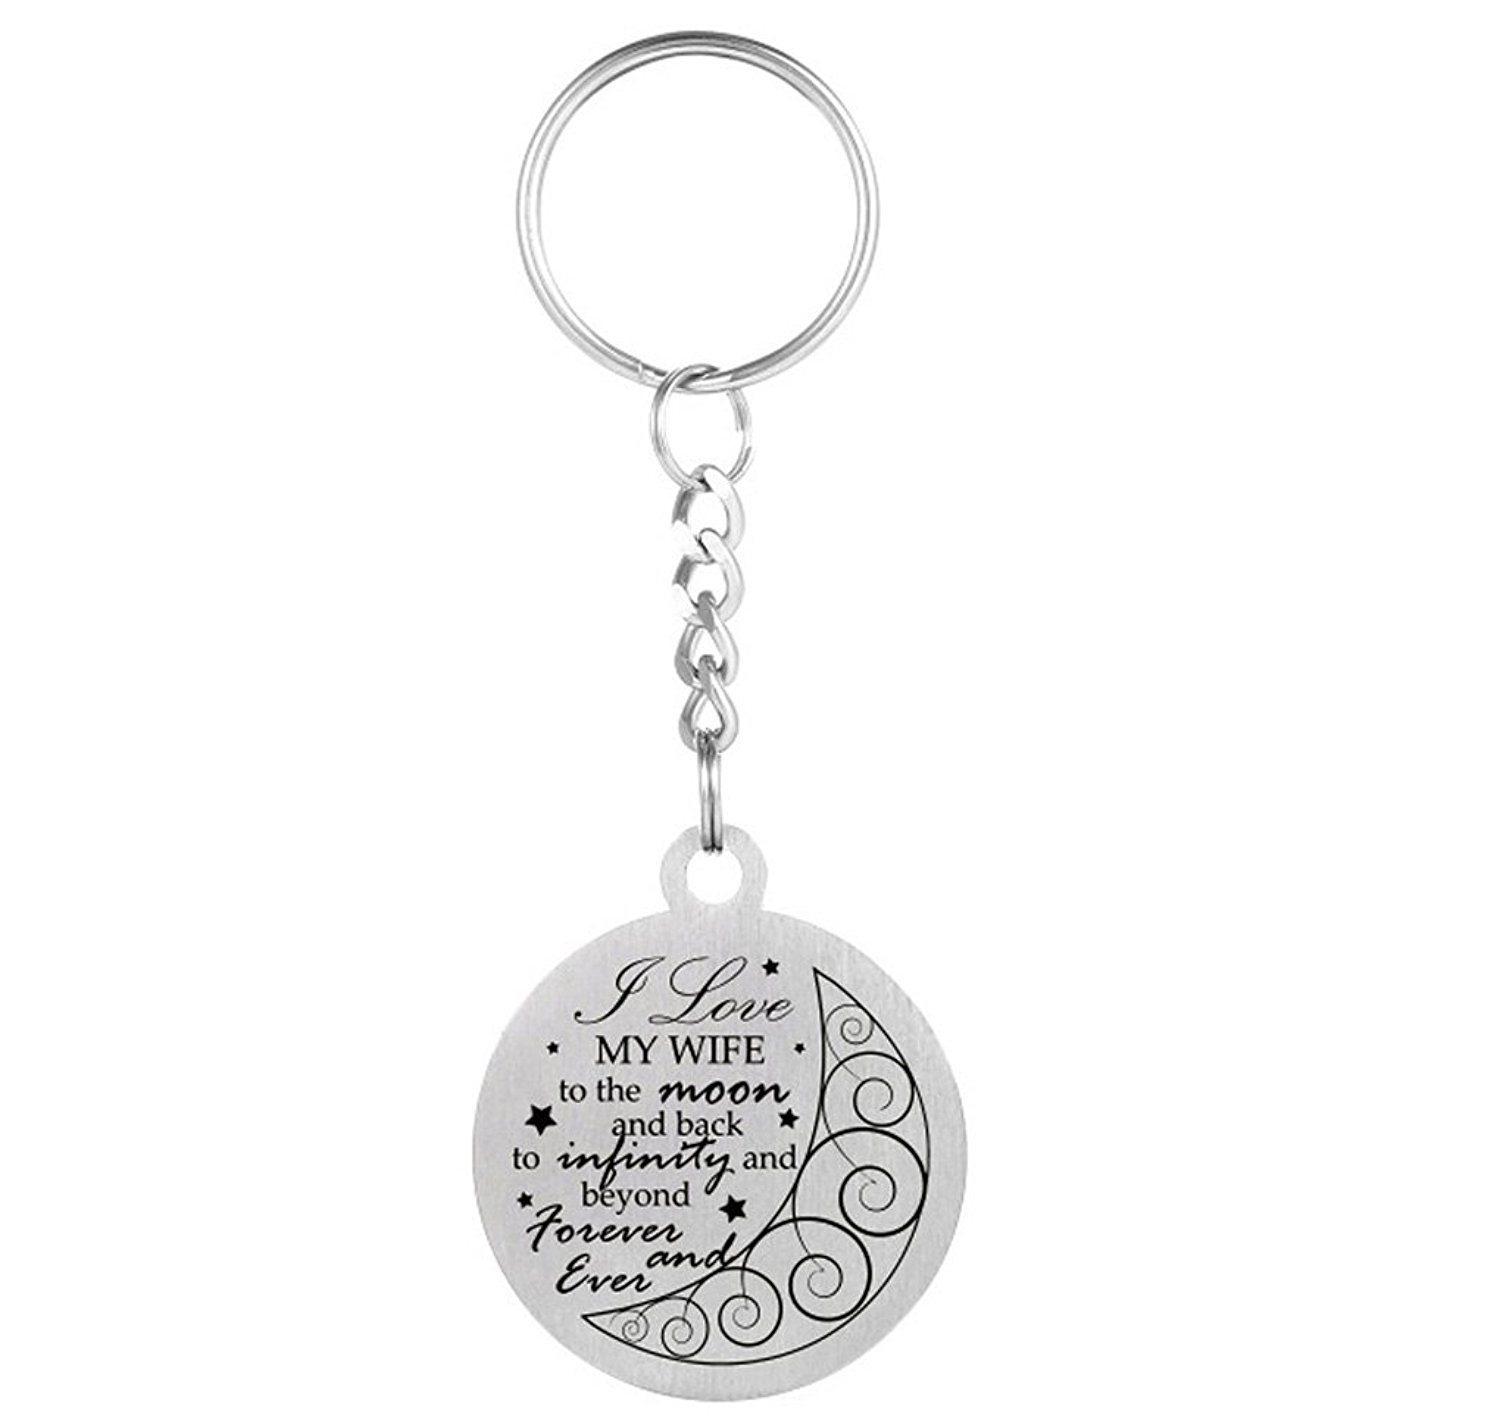 """Inspirational Love Gift To My wife """"I love my wife to the moon and back""""Dog Tag Necklace Keychain Small Valentine Gift"""